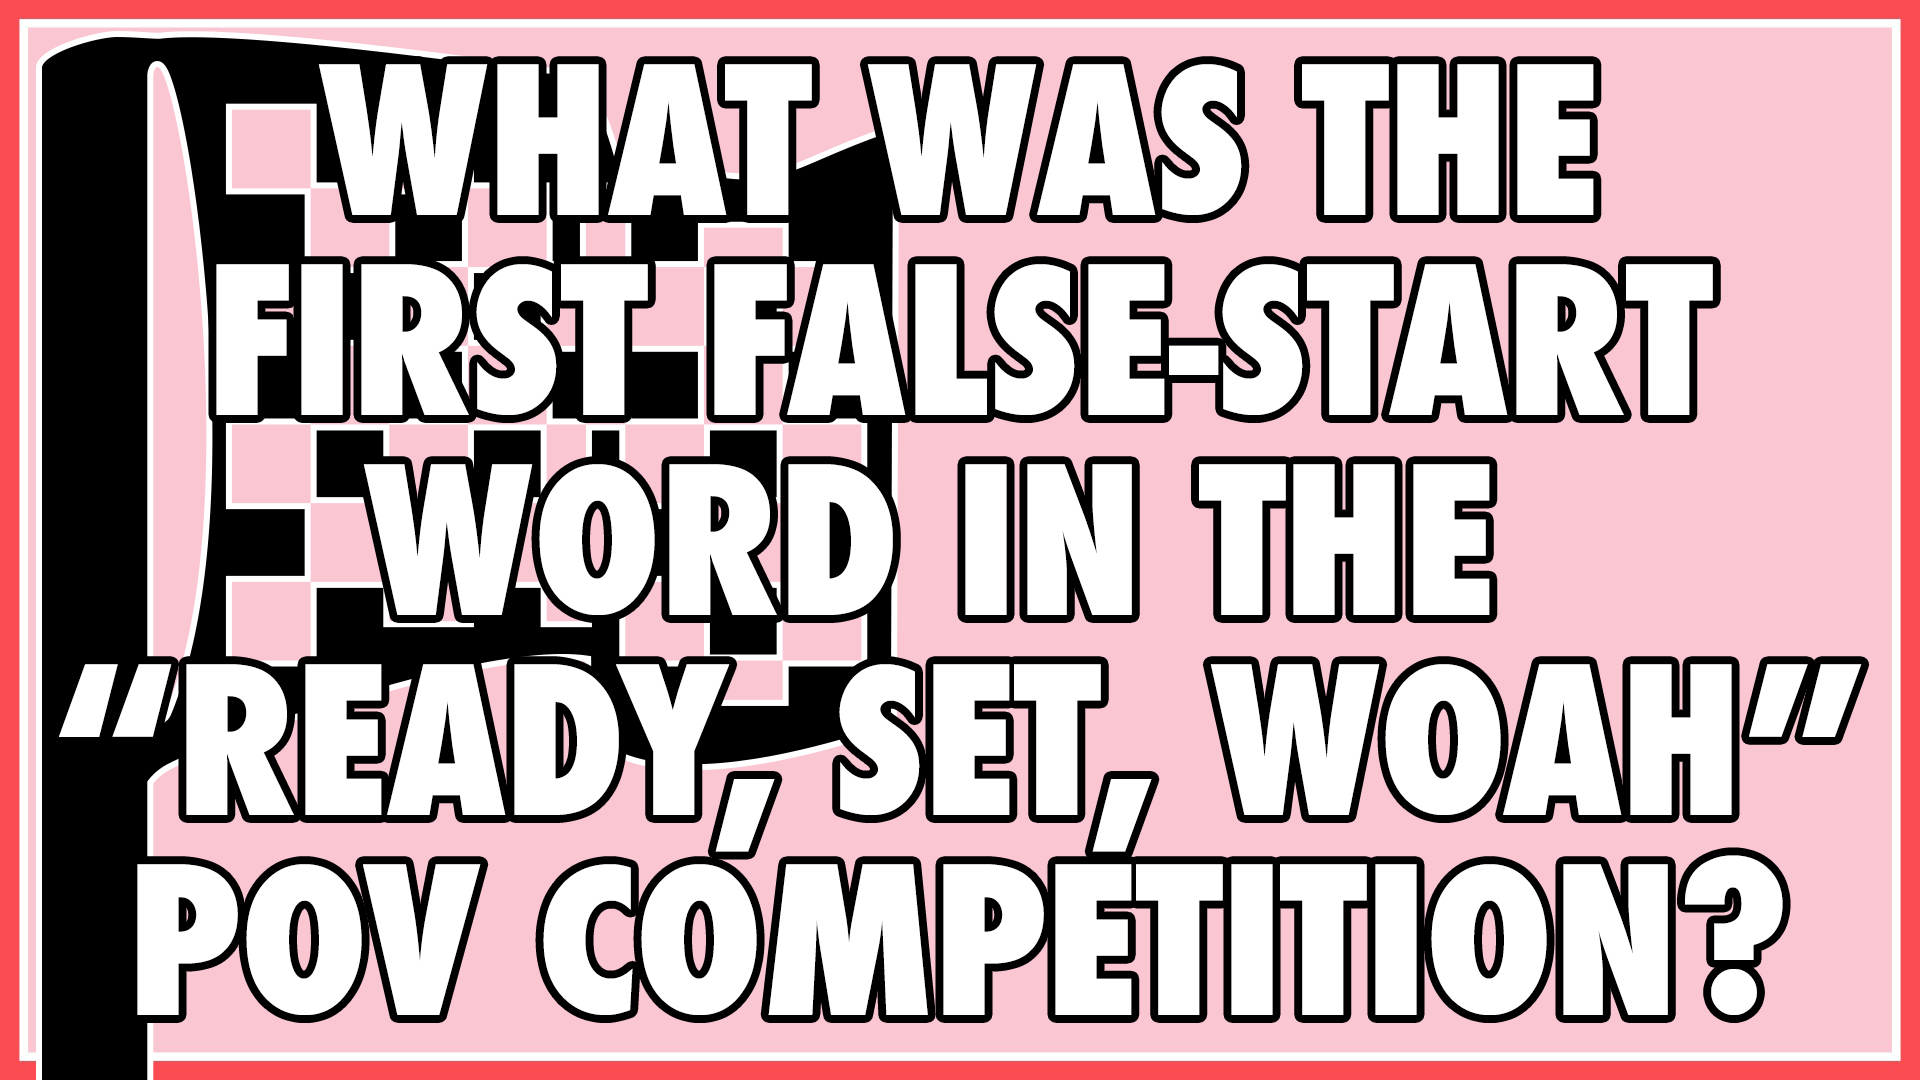 What was the first false-start word in the